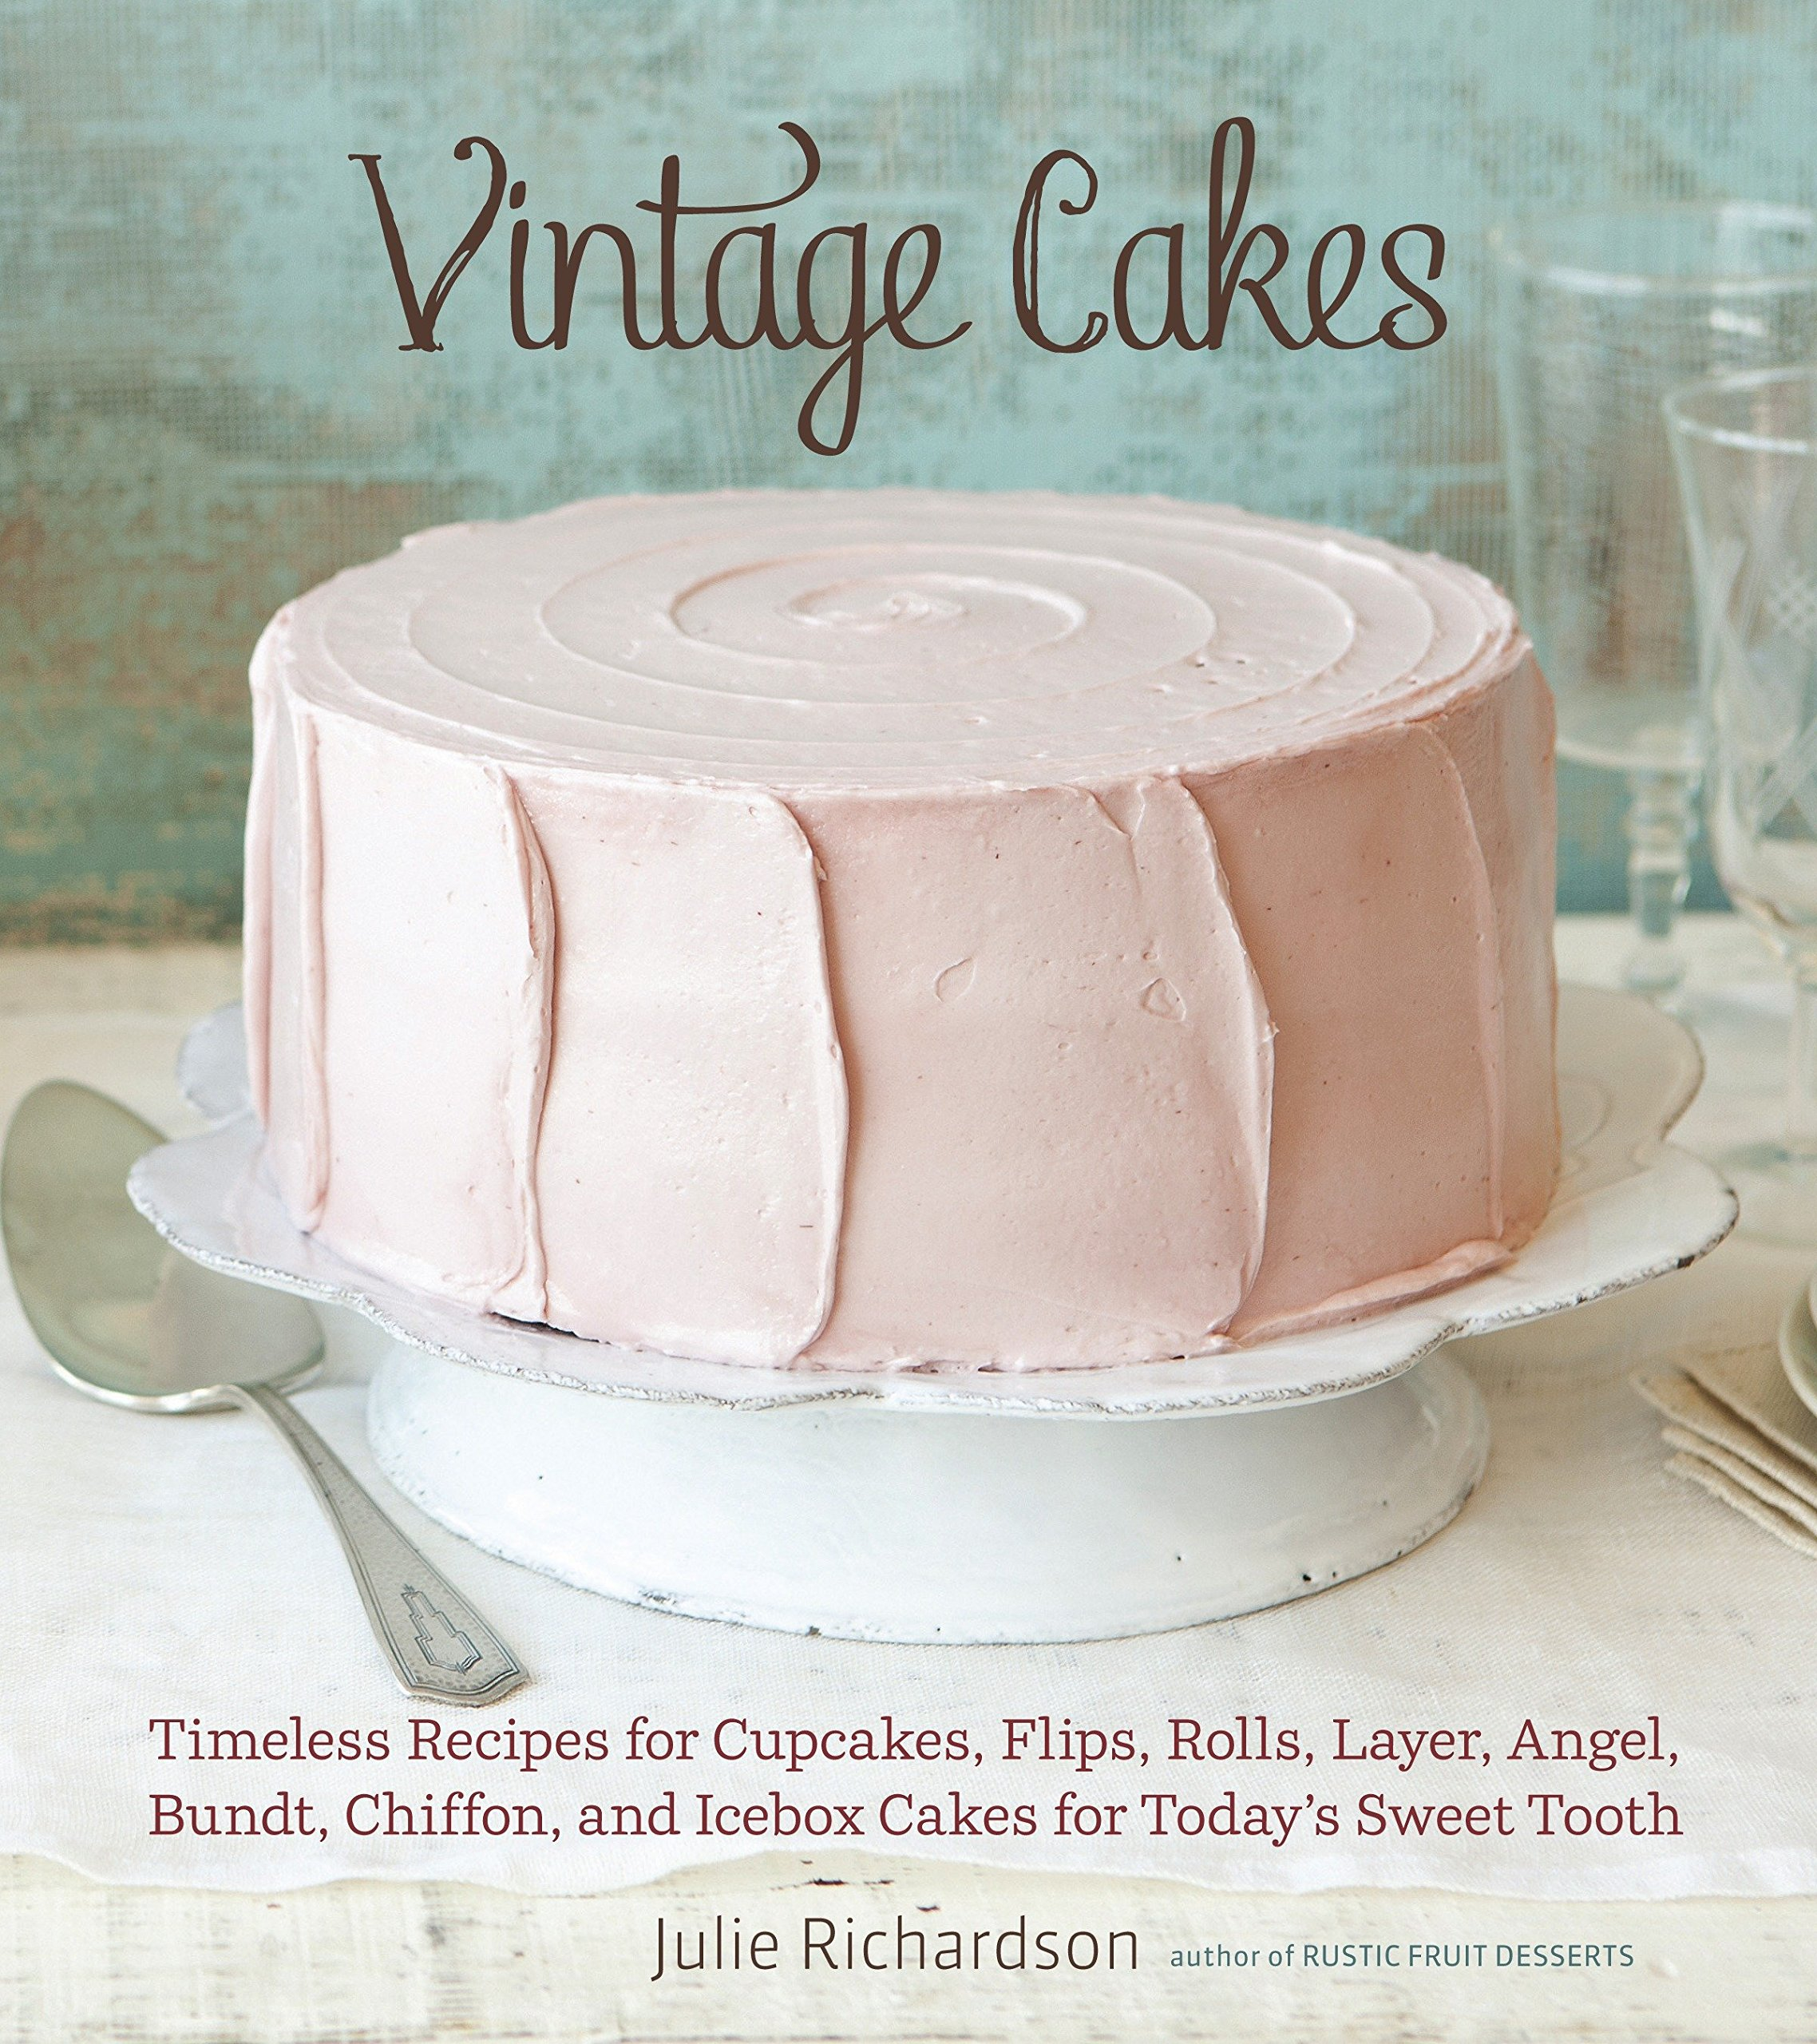 Vintage Cakes: Timeless Recipes for Cupcakes, Flips, Rolls, Layer, Angel, Bundt, Chiffon, and Icebox Cakes for Today's Sweet Tooth [A Baking Book} by Ten Speed Press